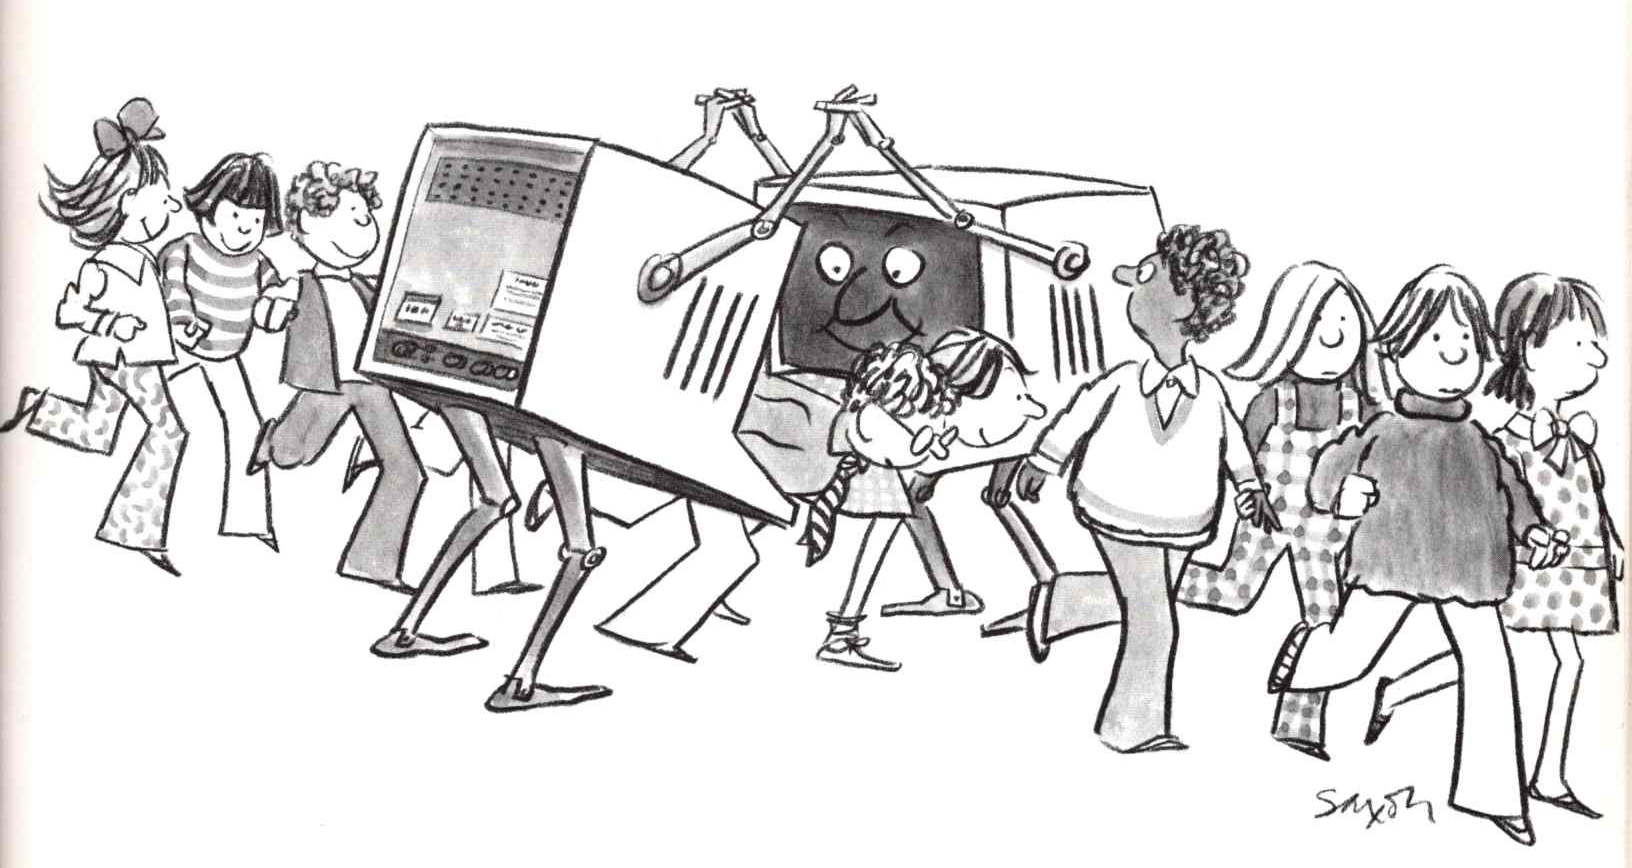 an illustration of students walking in a row between two cartoon computers with robotic arms and legs and smiling faces on their monitors